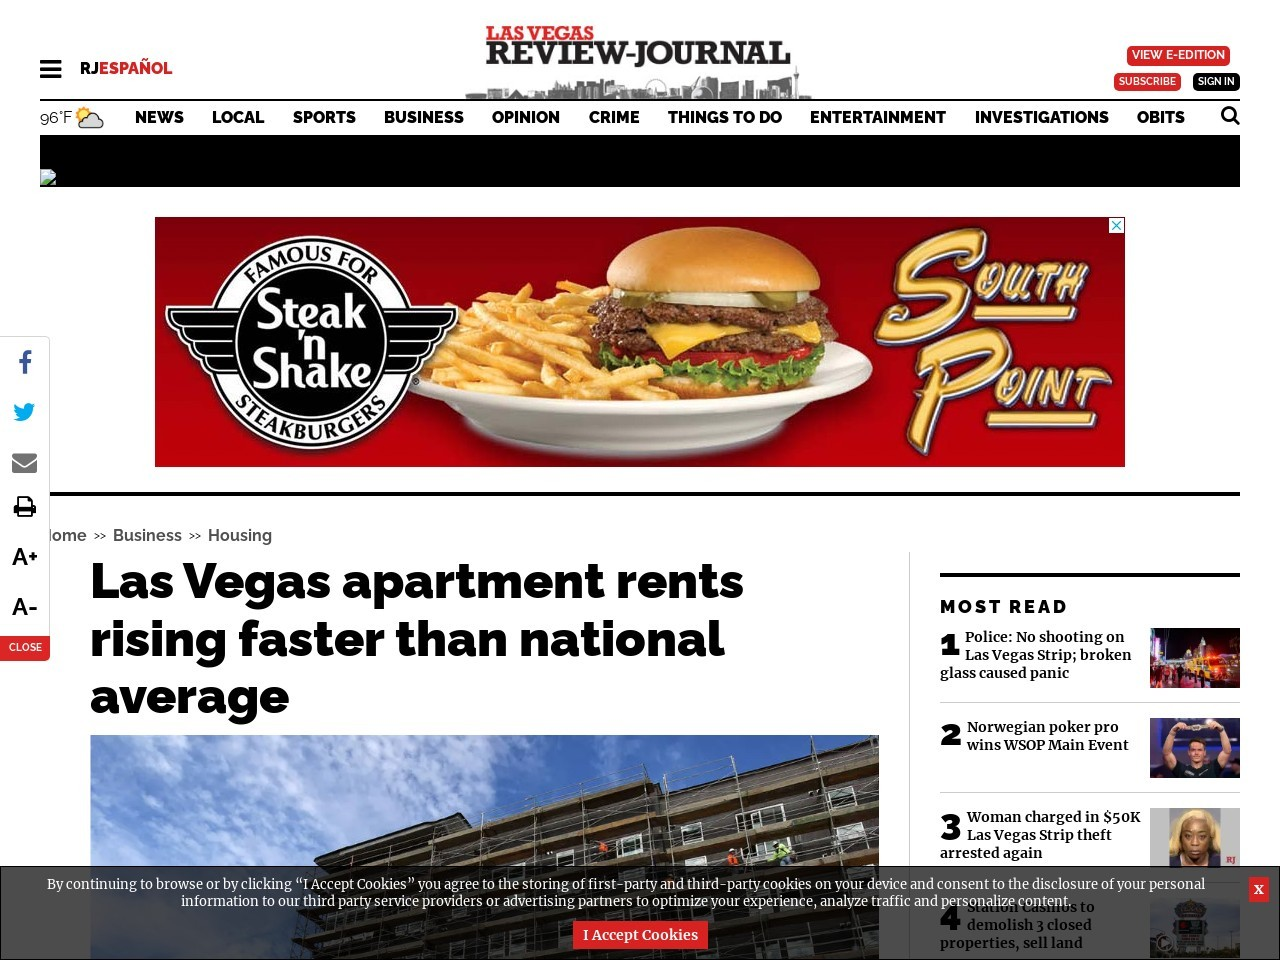 Las Vegas apartment rents rising faster than the national average